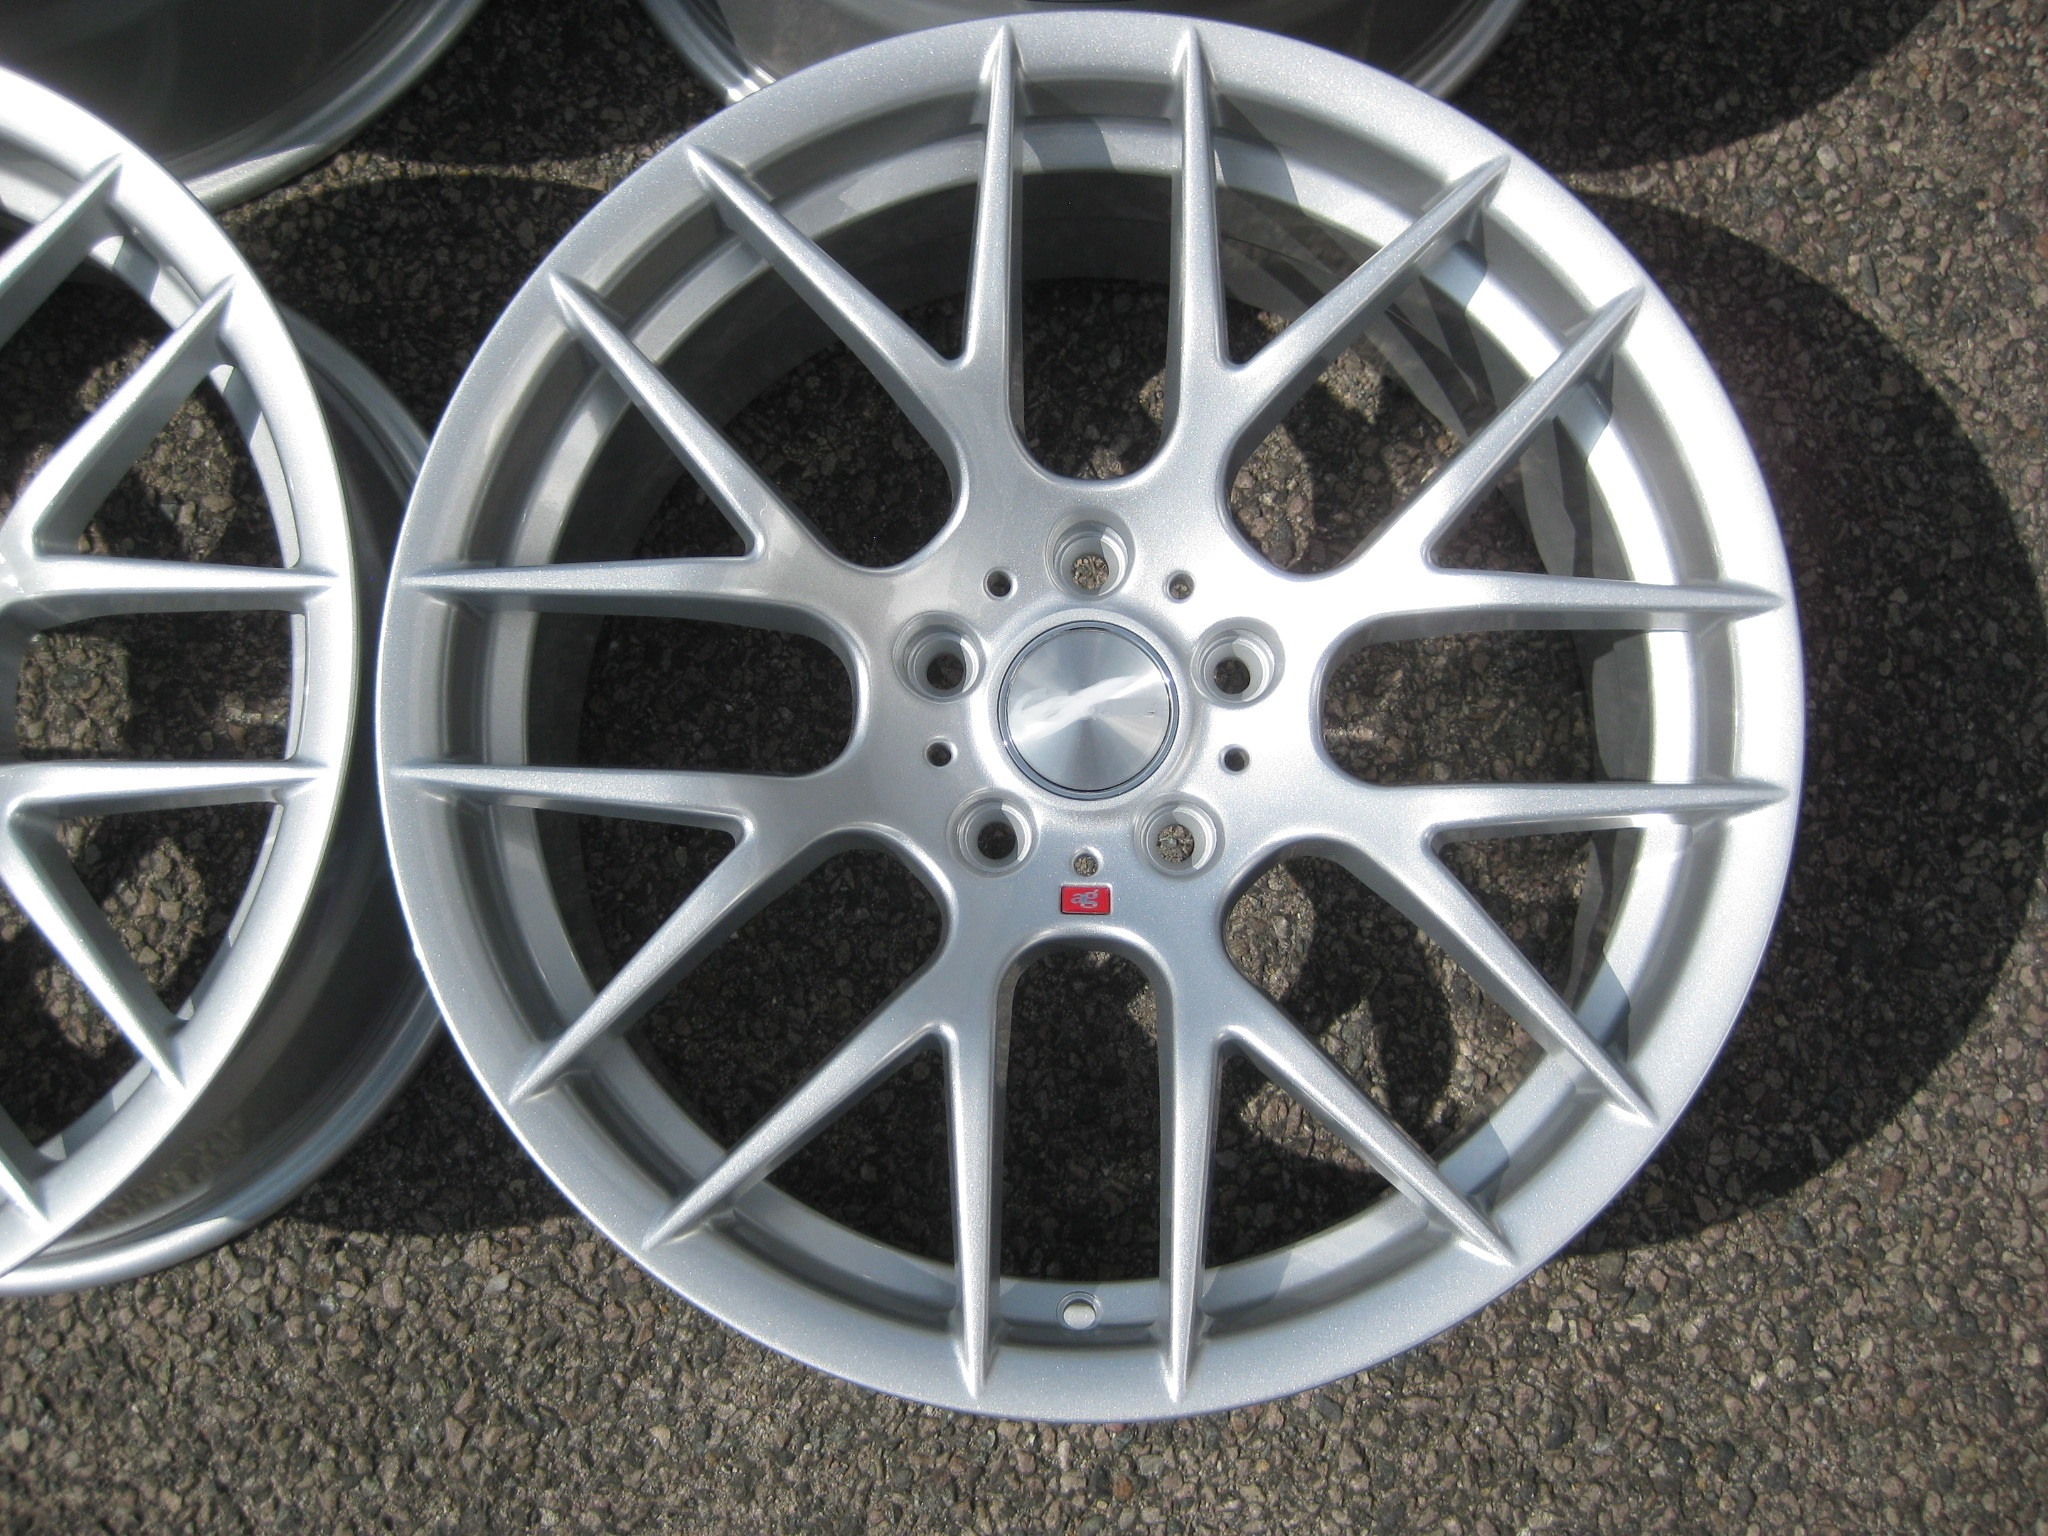 "NEW 19"" AVANT GARDE M359 Y SPOKE ALLOY WHEELS IN QUARTZ SILVER DEEPER CONCAVE 10"" REAR"